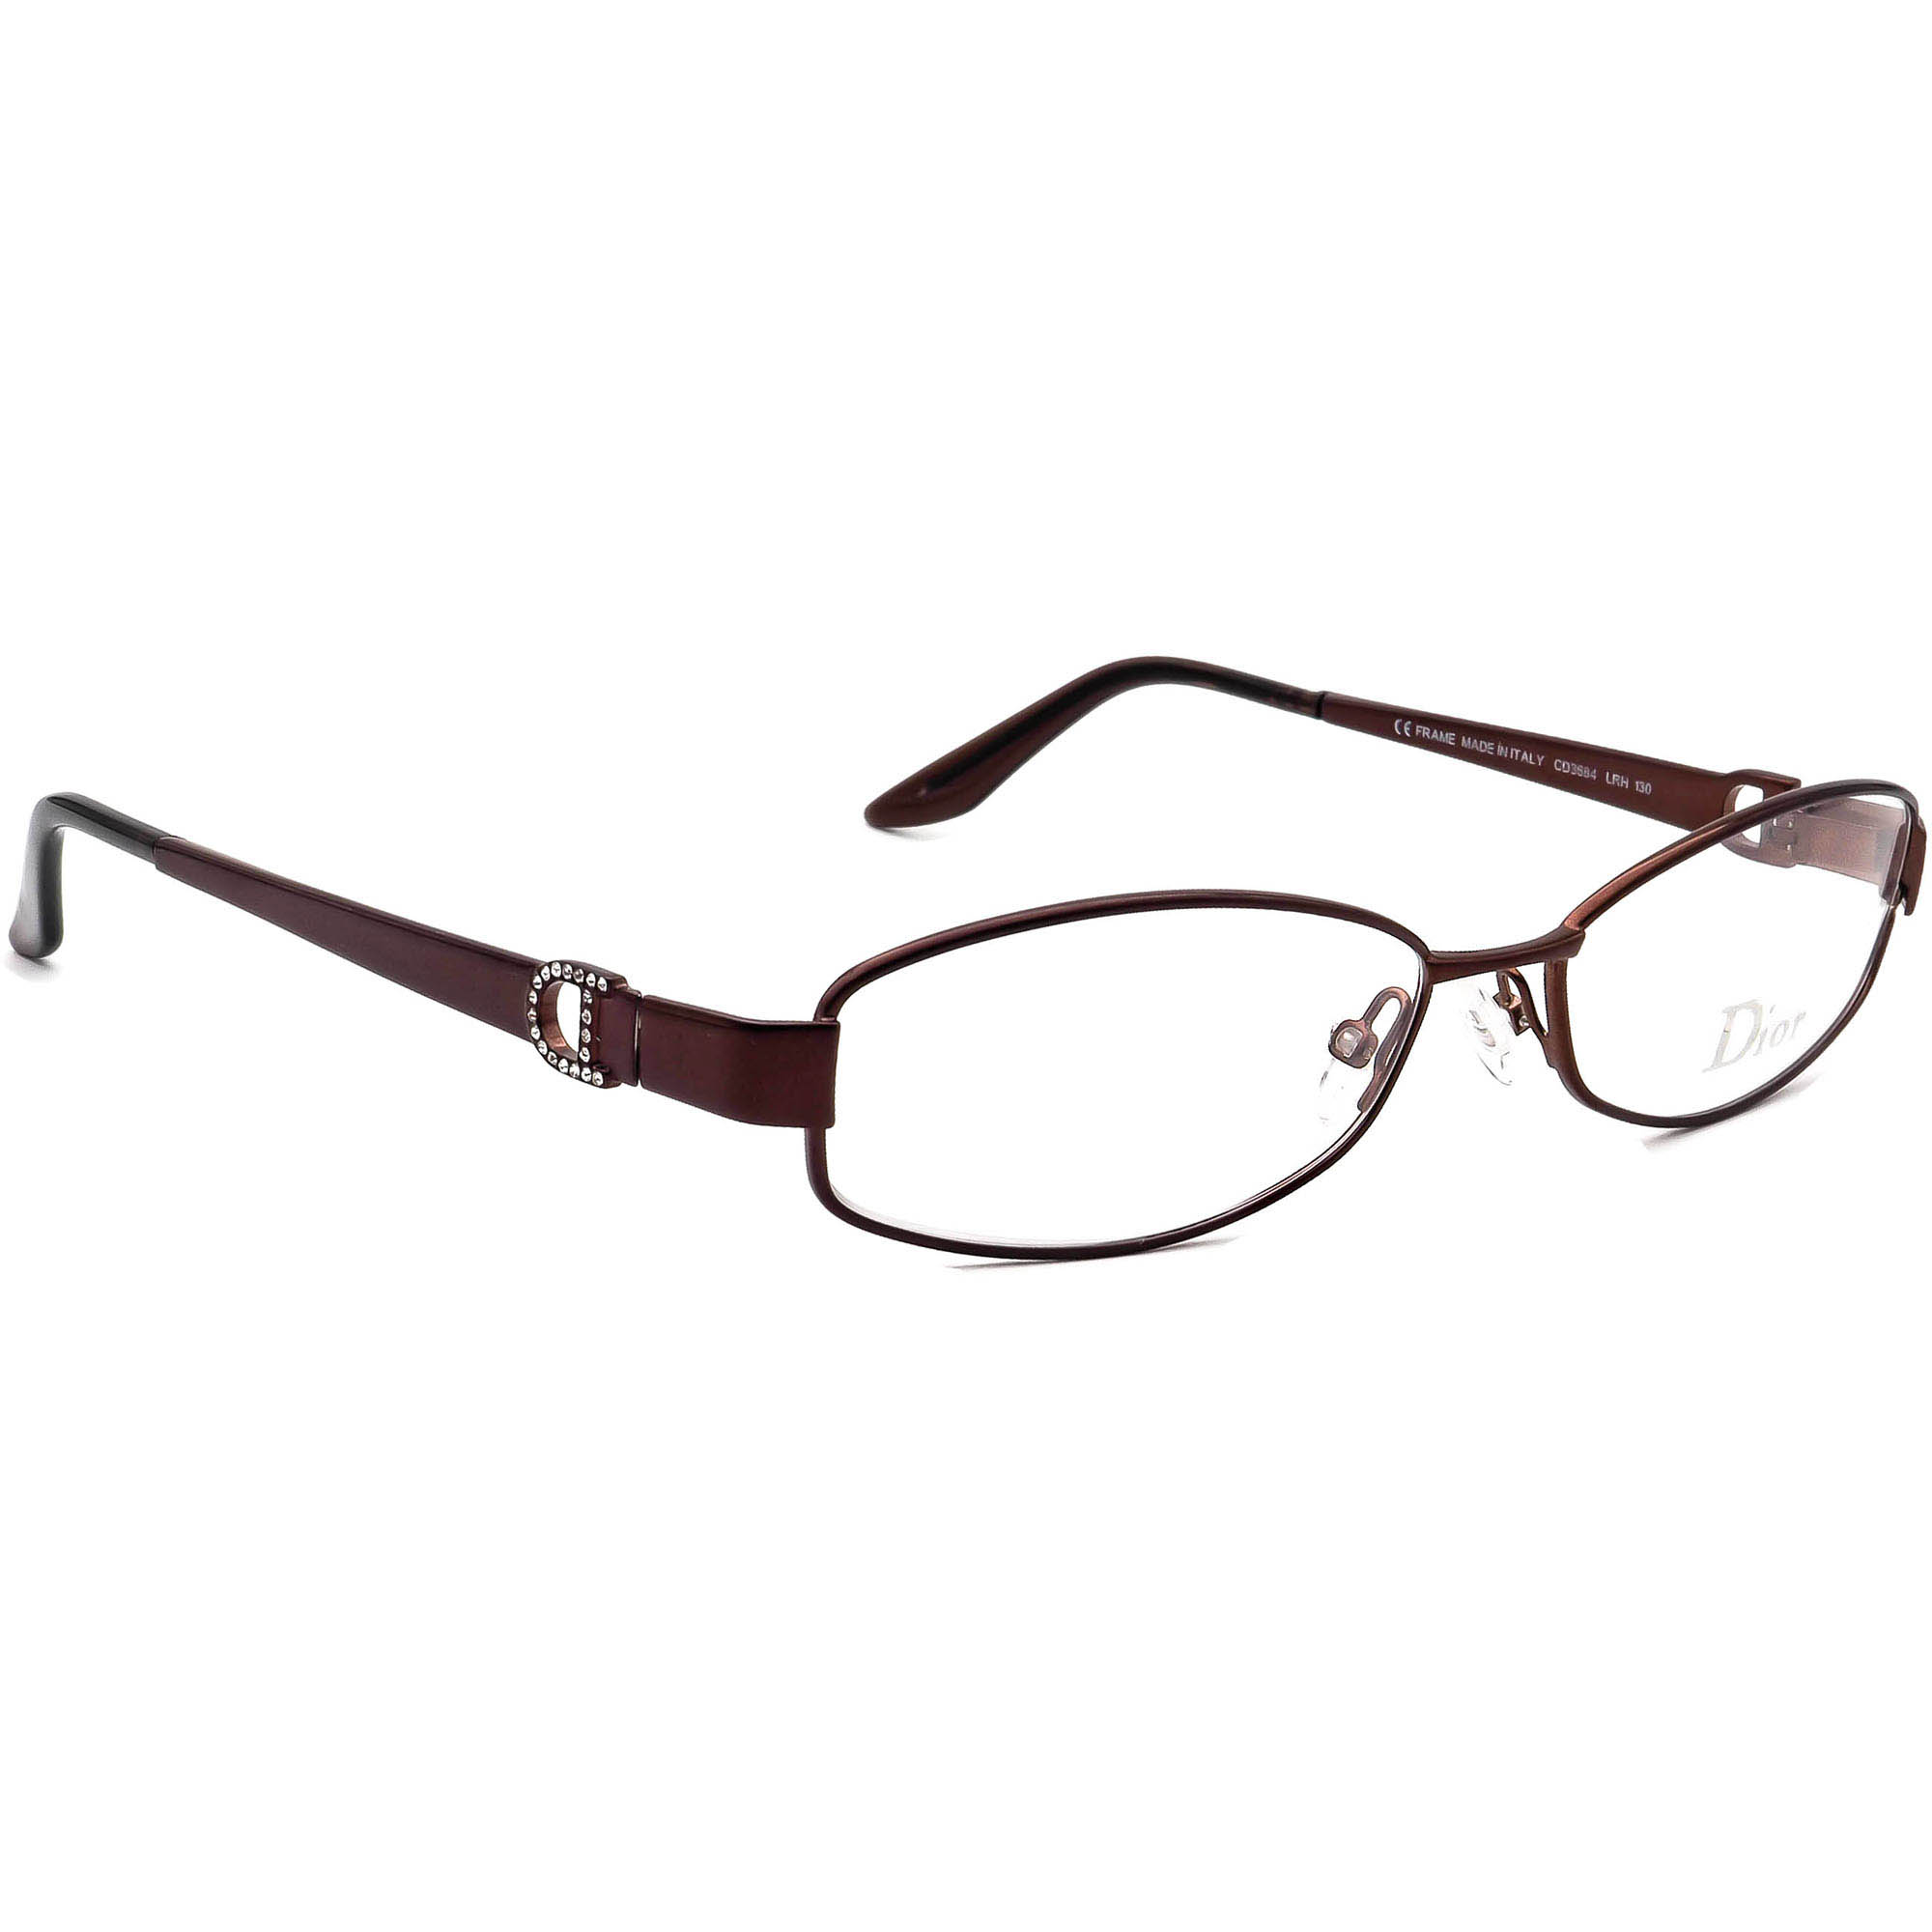 Christian Dior CD3684 LRH Eyeglasses